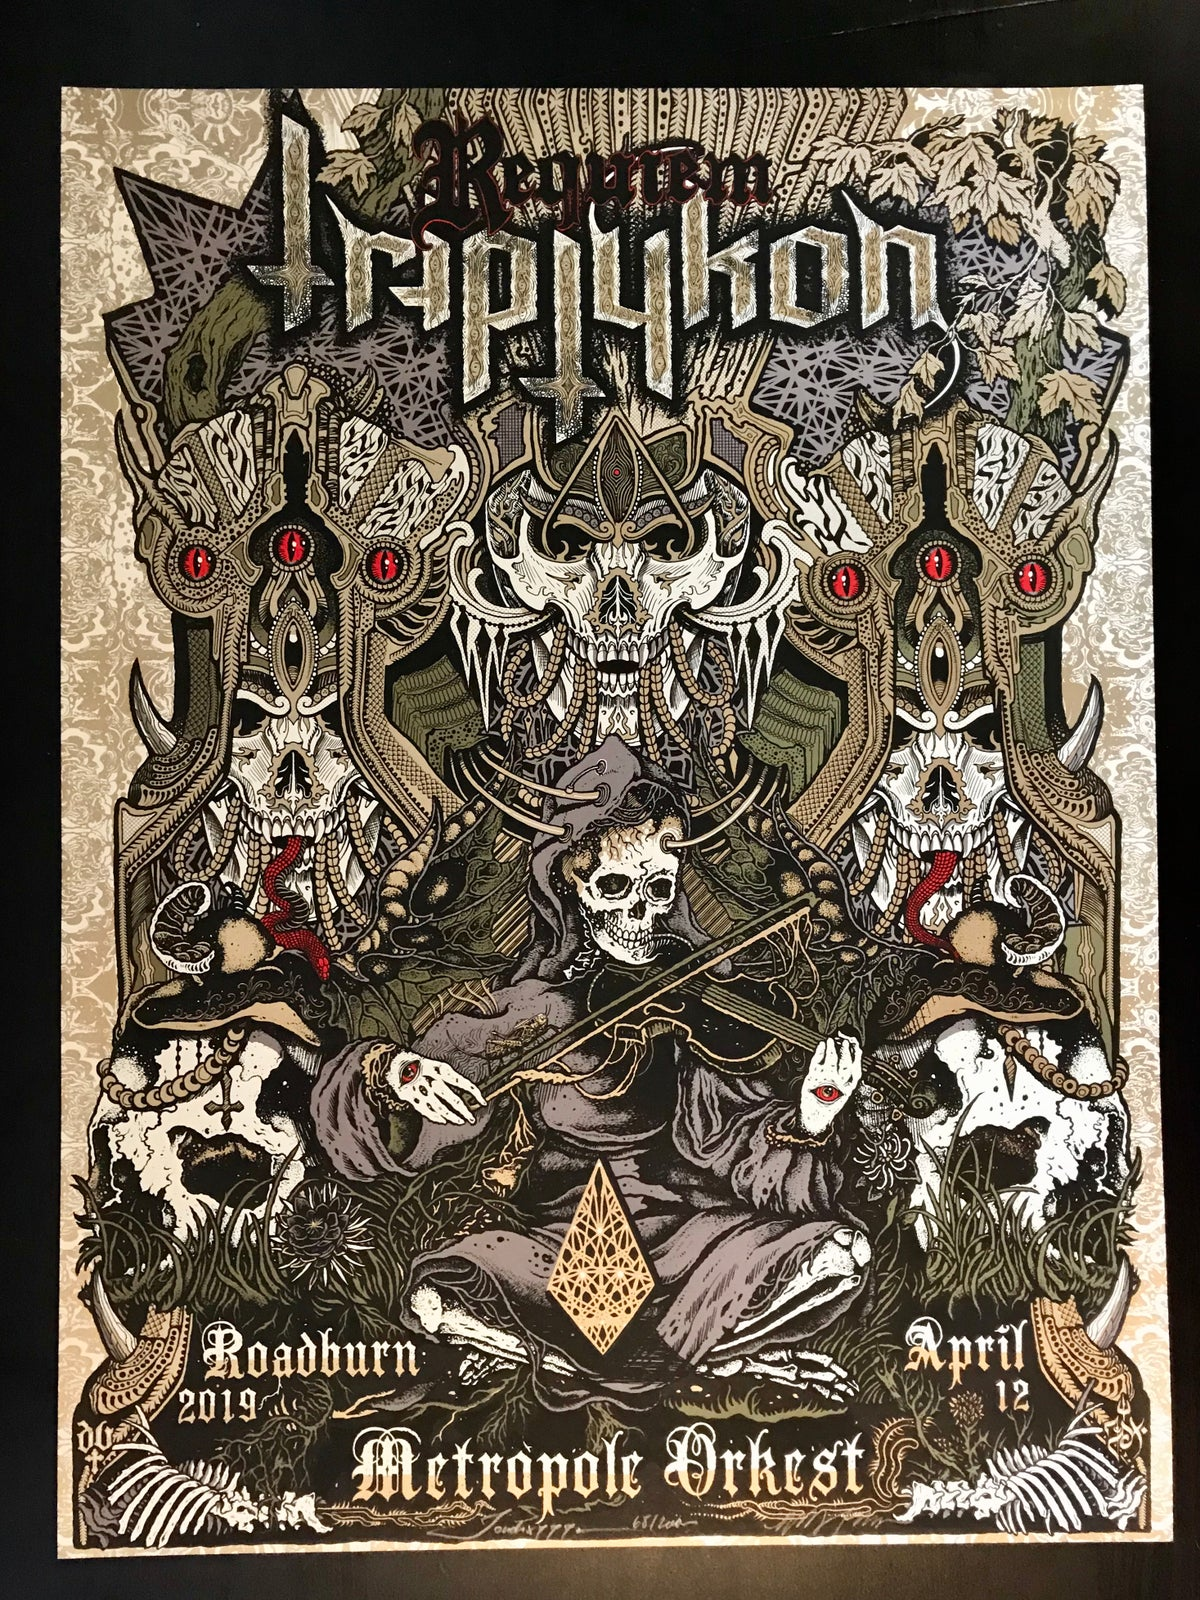 Image of Triptykon print by Jondix